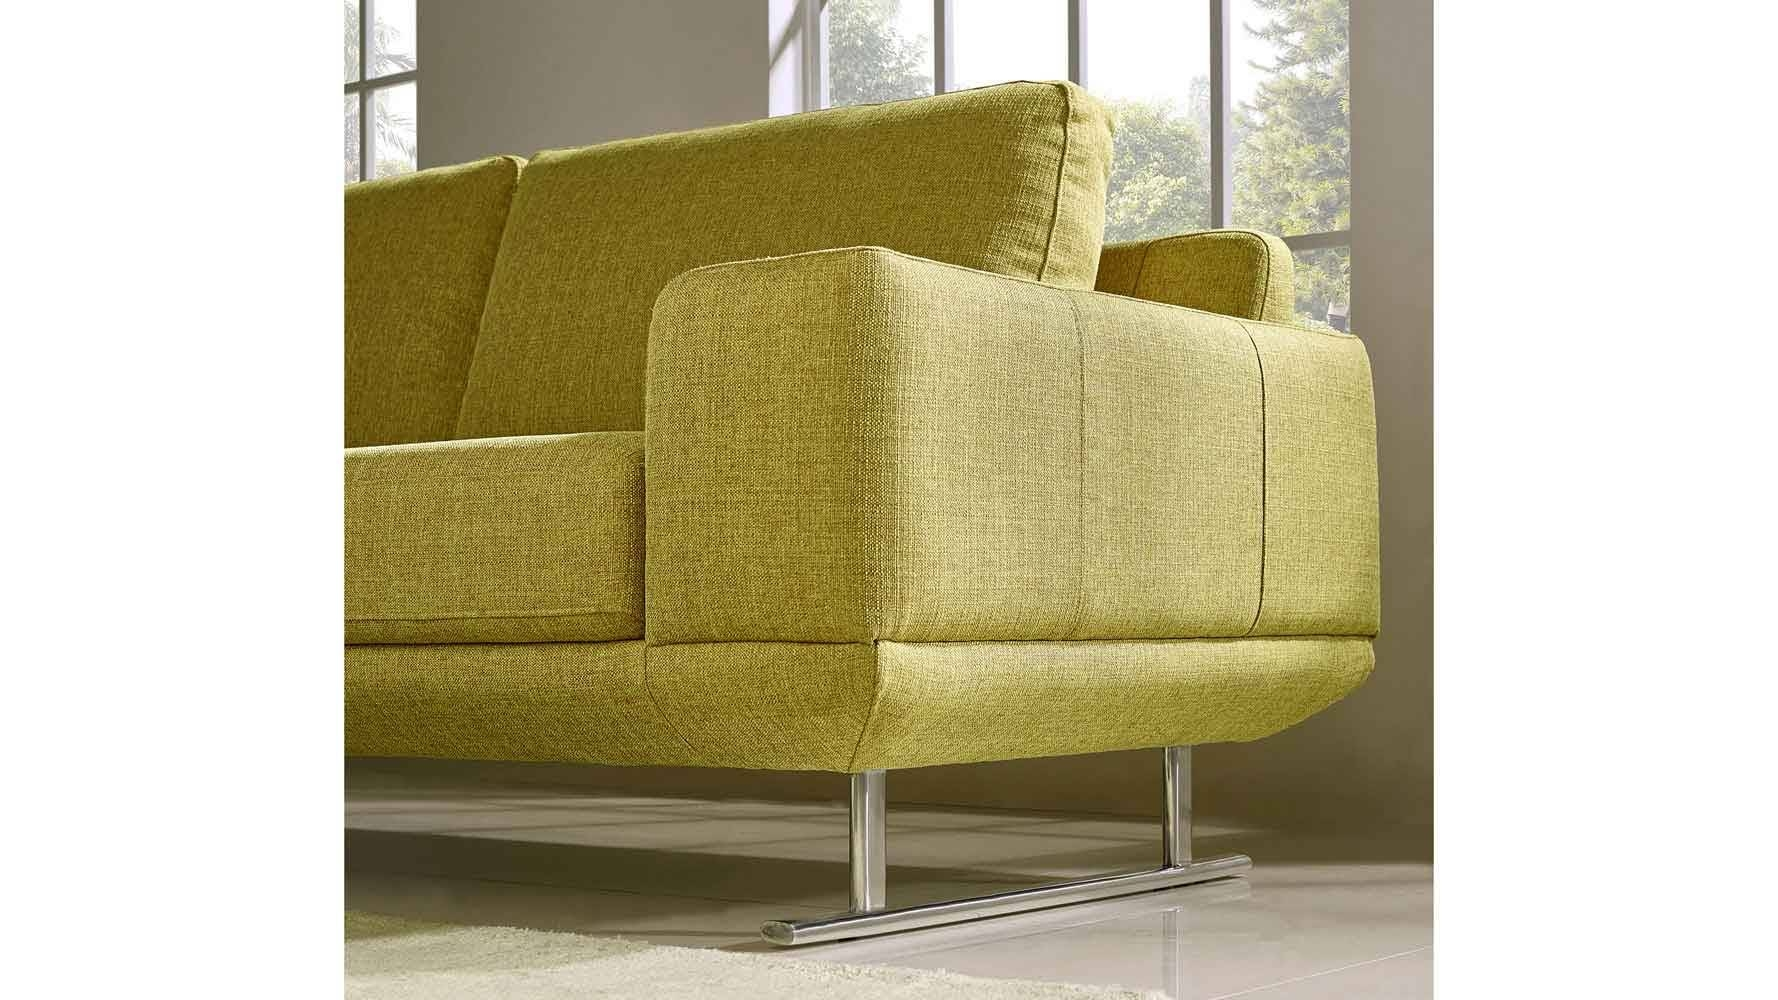 Superb Modern Chartreuse Fabric Della Sofa And Loveseat Set | Zuri Furniture  Throughout Chartreuse Sofas (Image